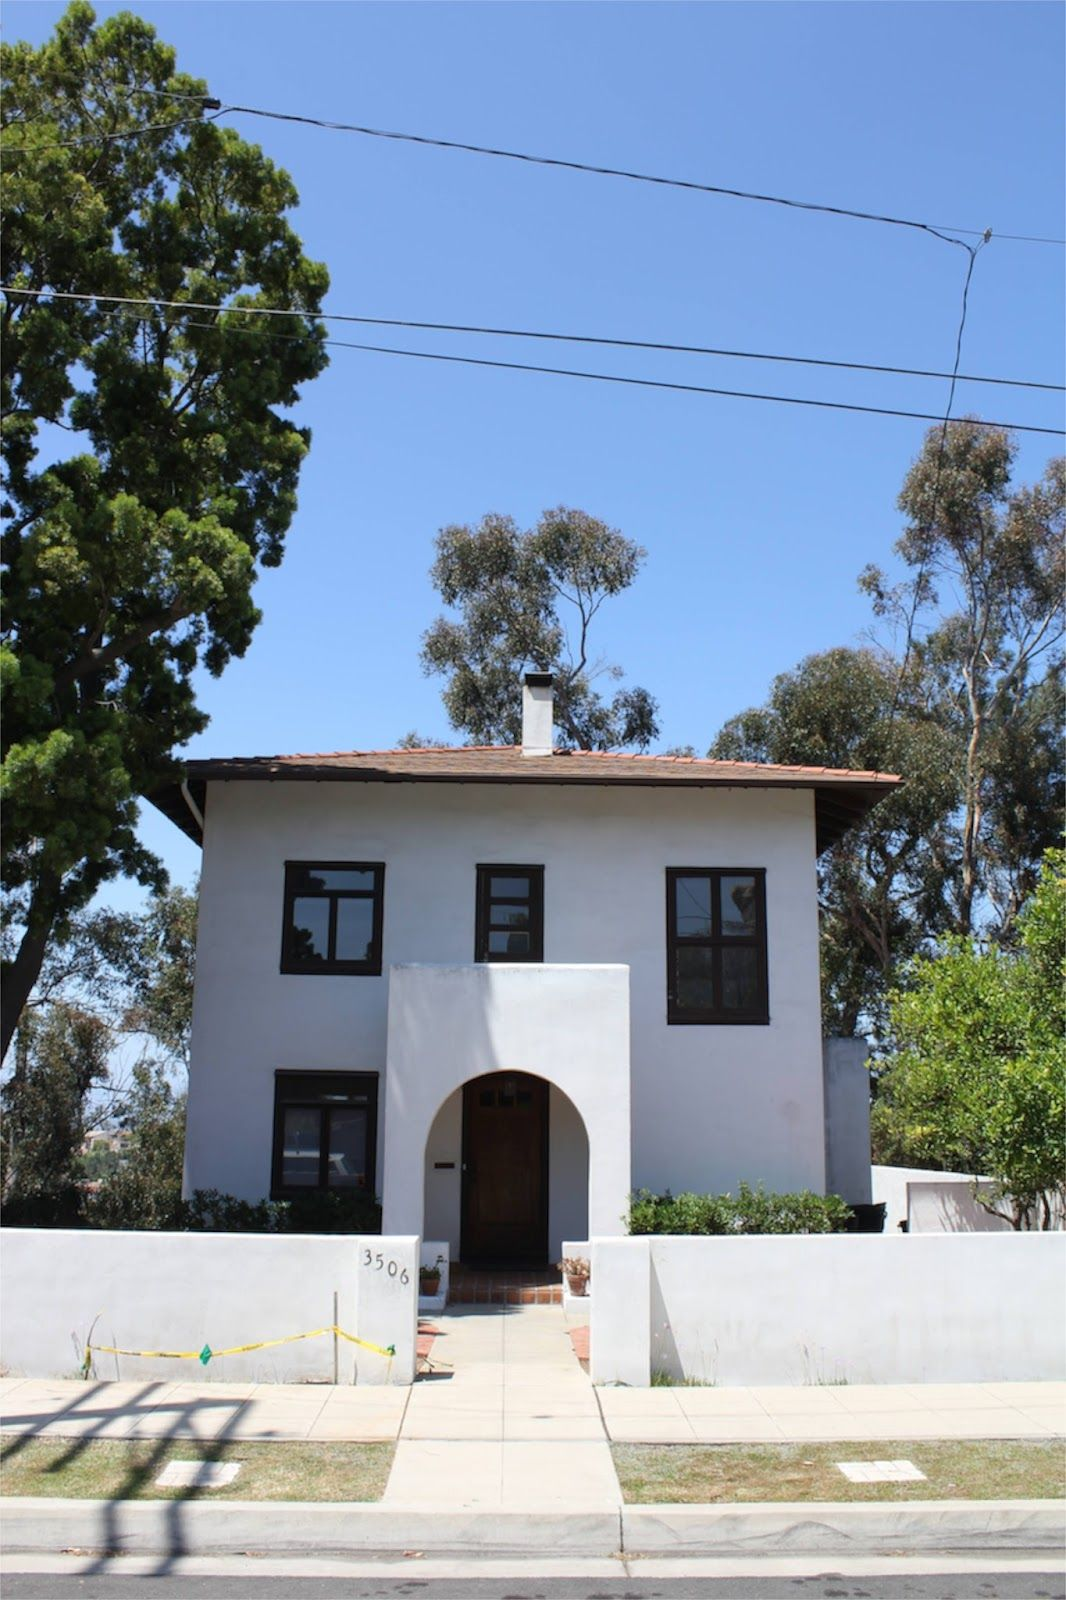 San Diego Has A Number Of Important Architectural Gems First And Foremost San Diego Was The Professional Home Of Irving Gill From Architecture San Diego Diego